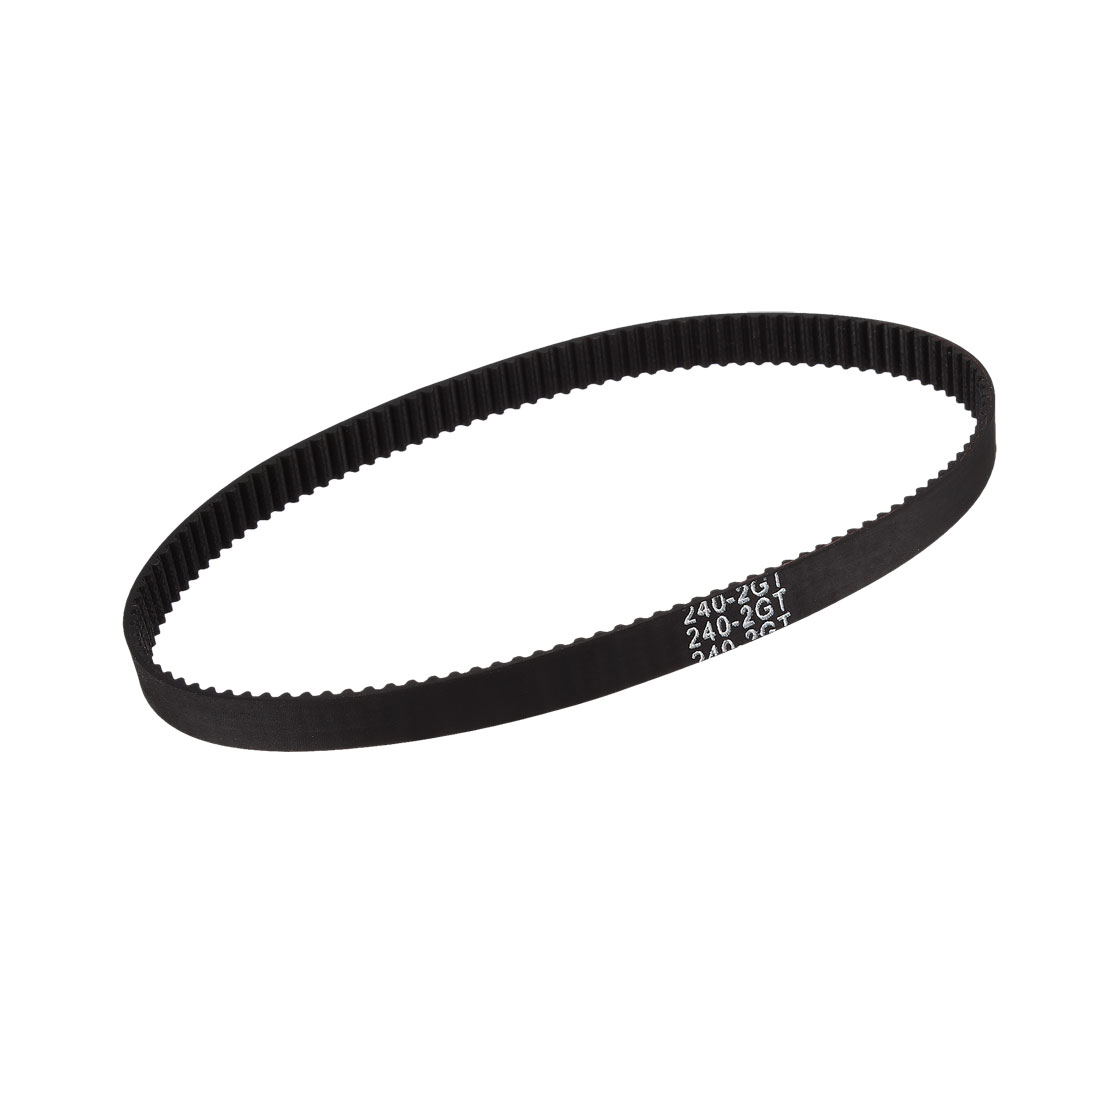 GT2 Timing Belt 240mm Closed Fit Synchronous Wheel for 3D Printer